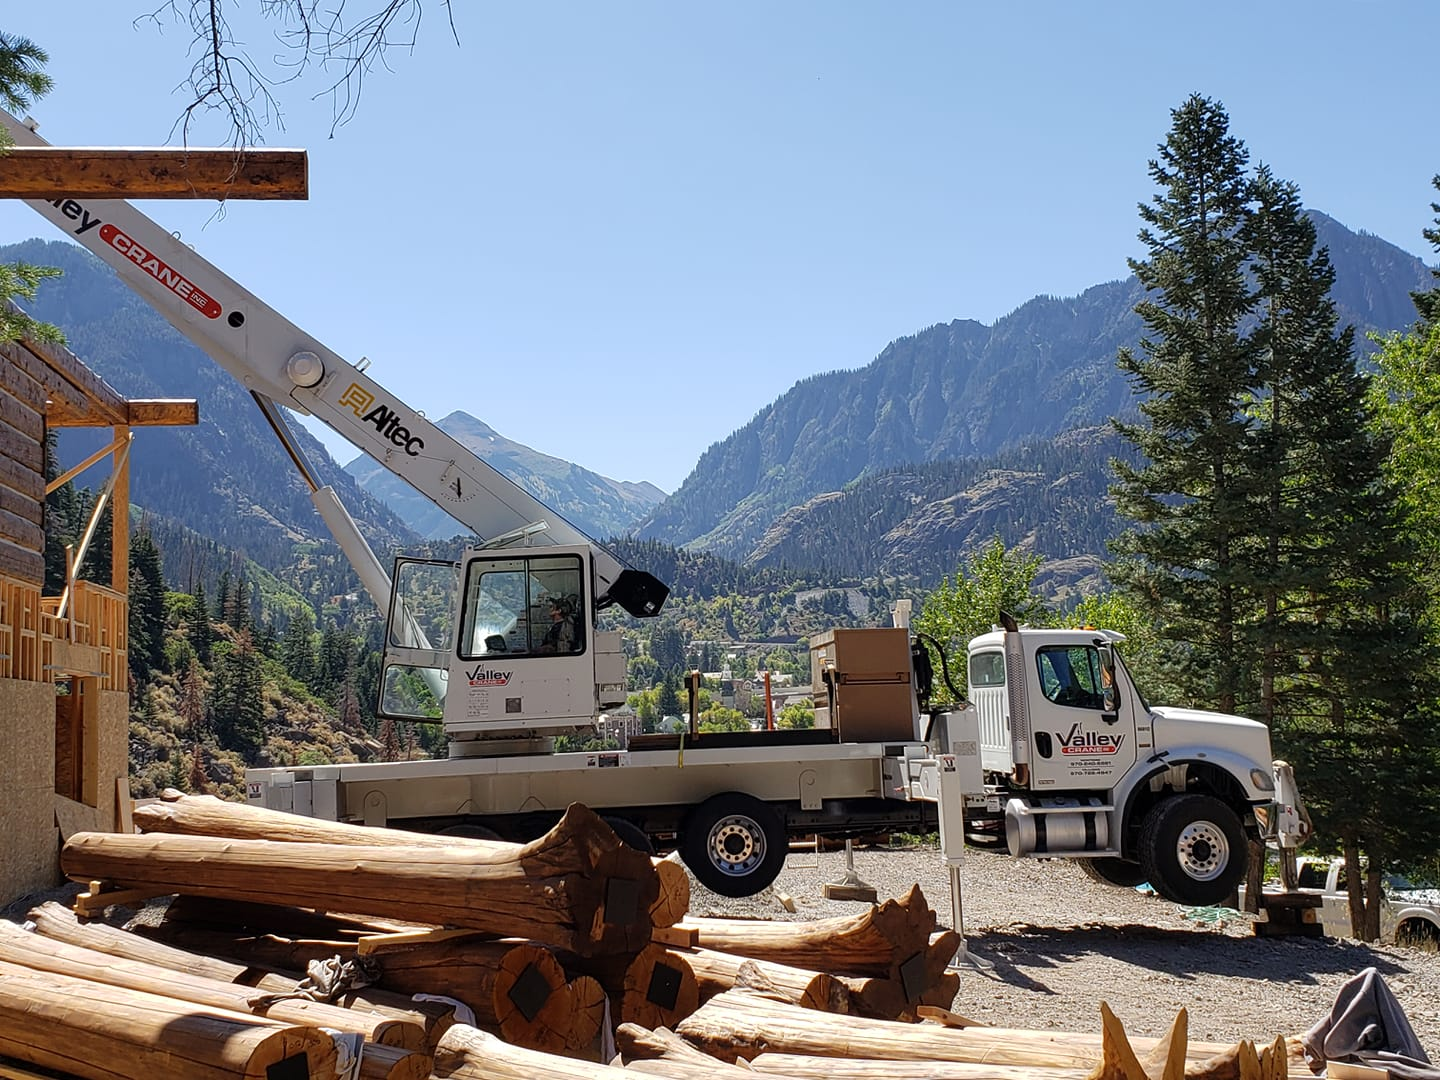 Valley Crane Service Company working in Ouray CO